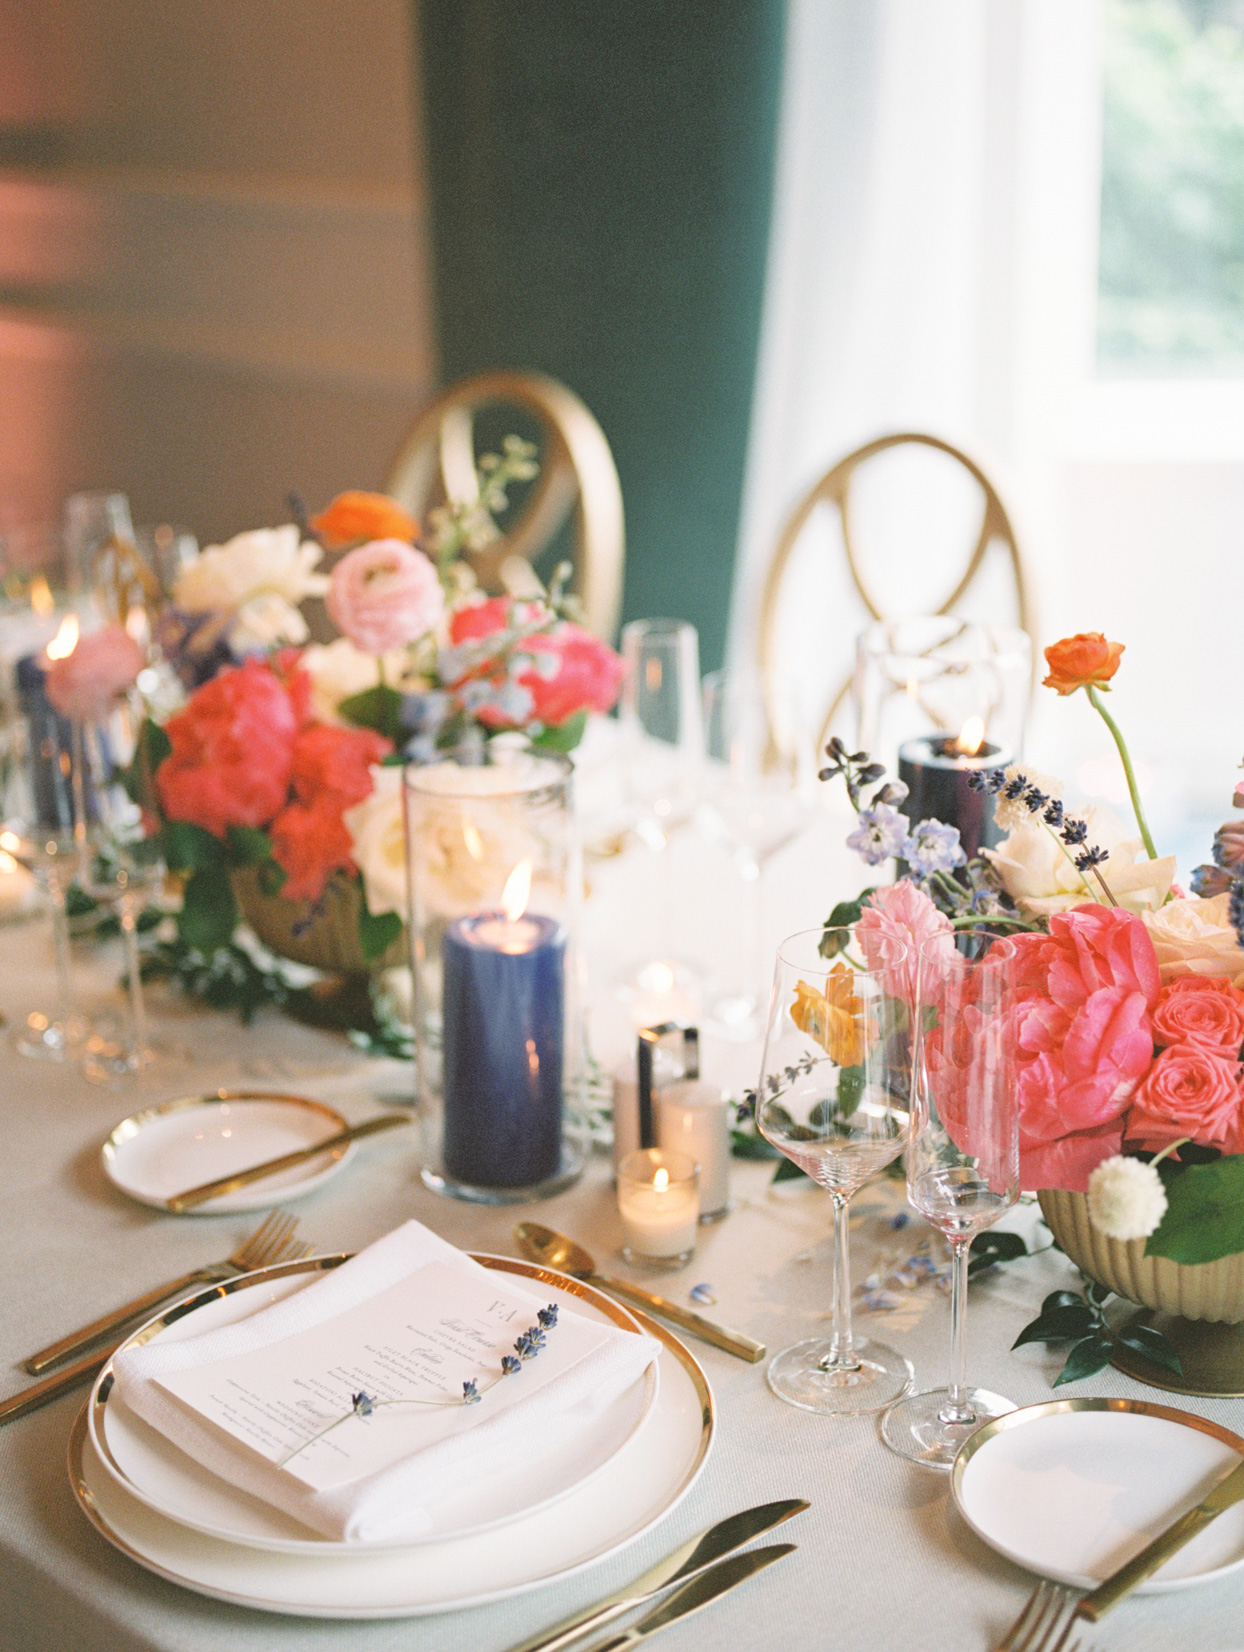 wedding reception place settings with gold-rimmed chargers, gold flatware, and navy pillar candles